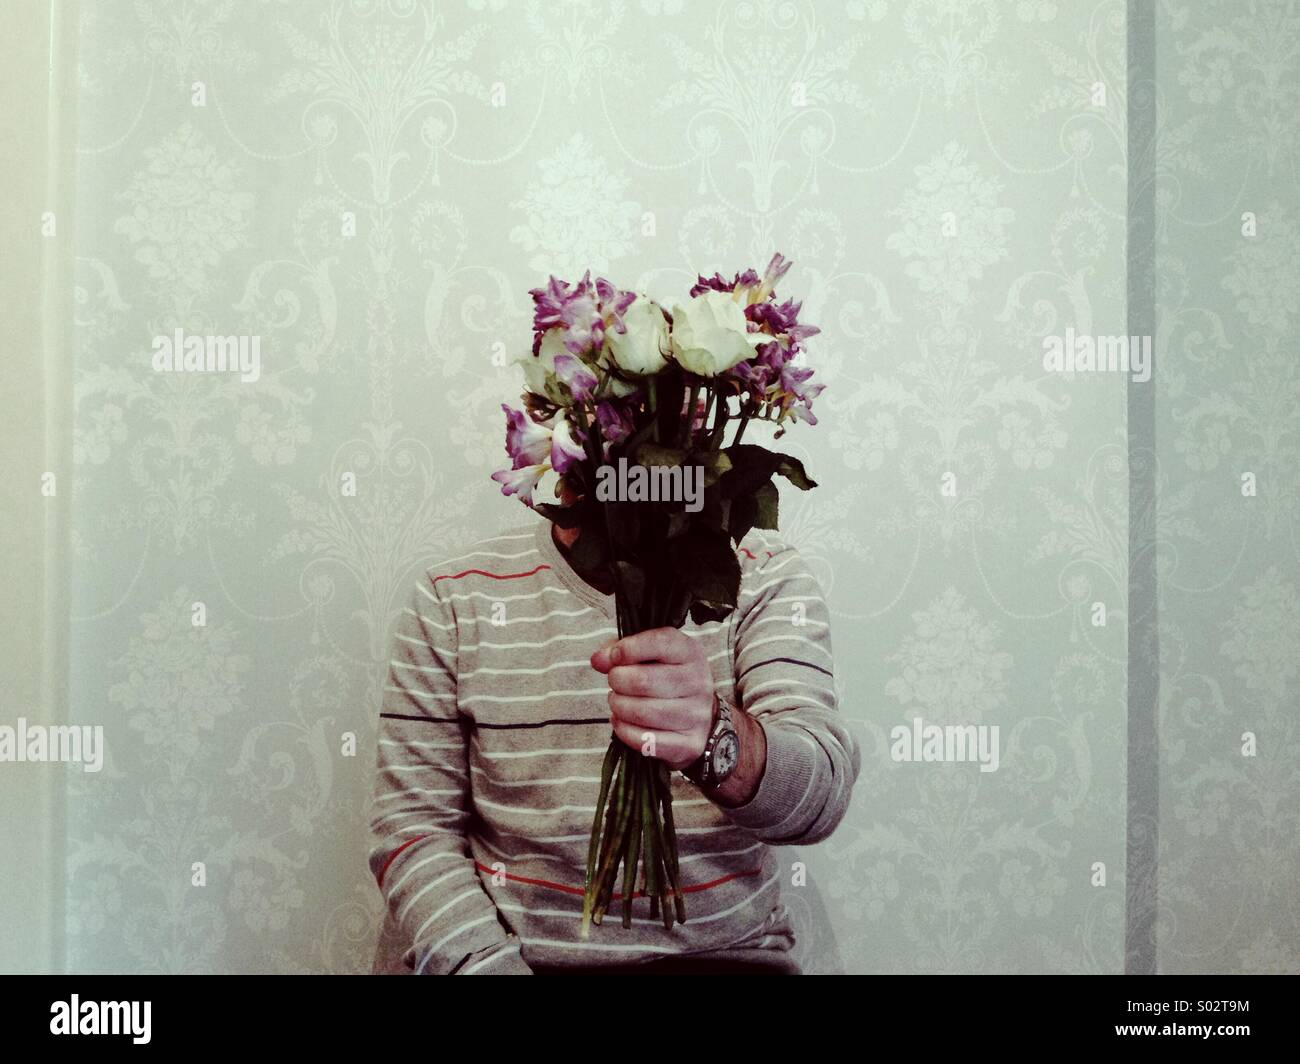 Hidden figure presenting a bunch of flowers indoors against a plain wallpapered background - Stock Image